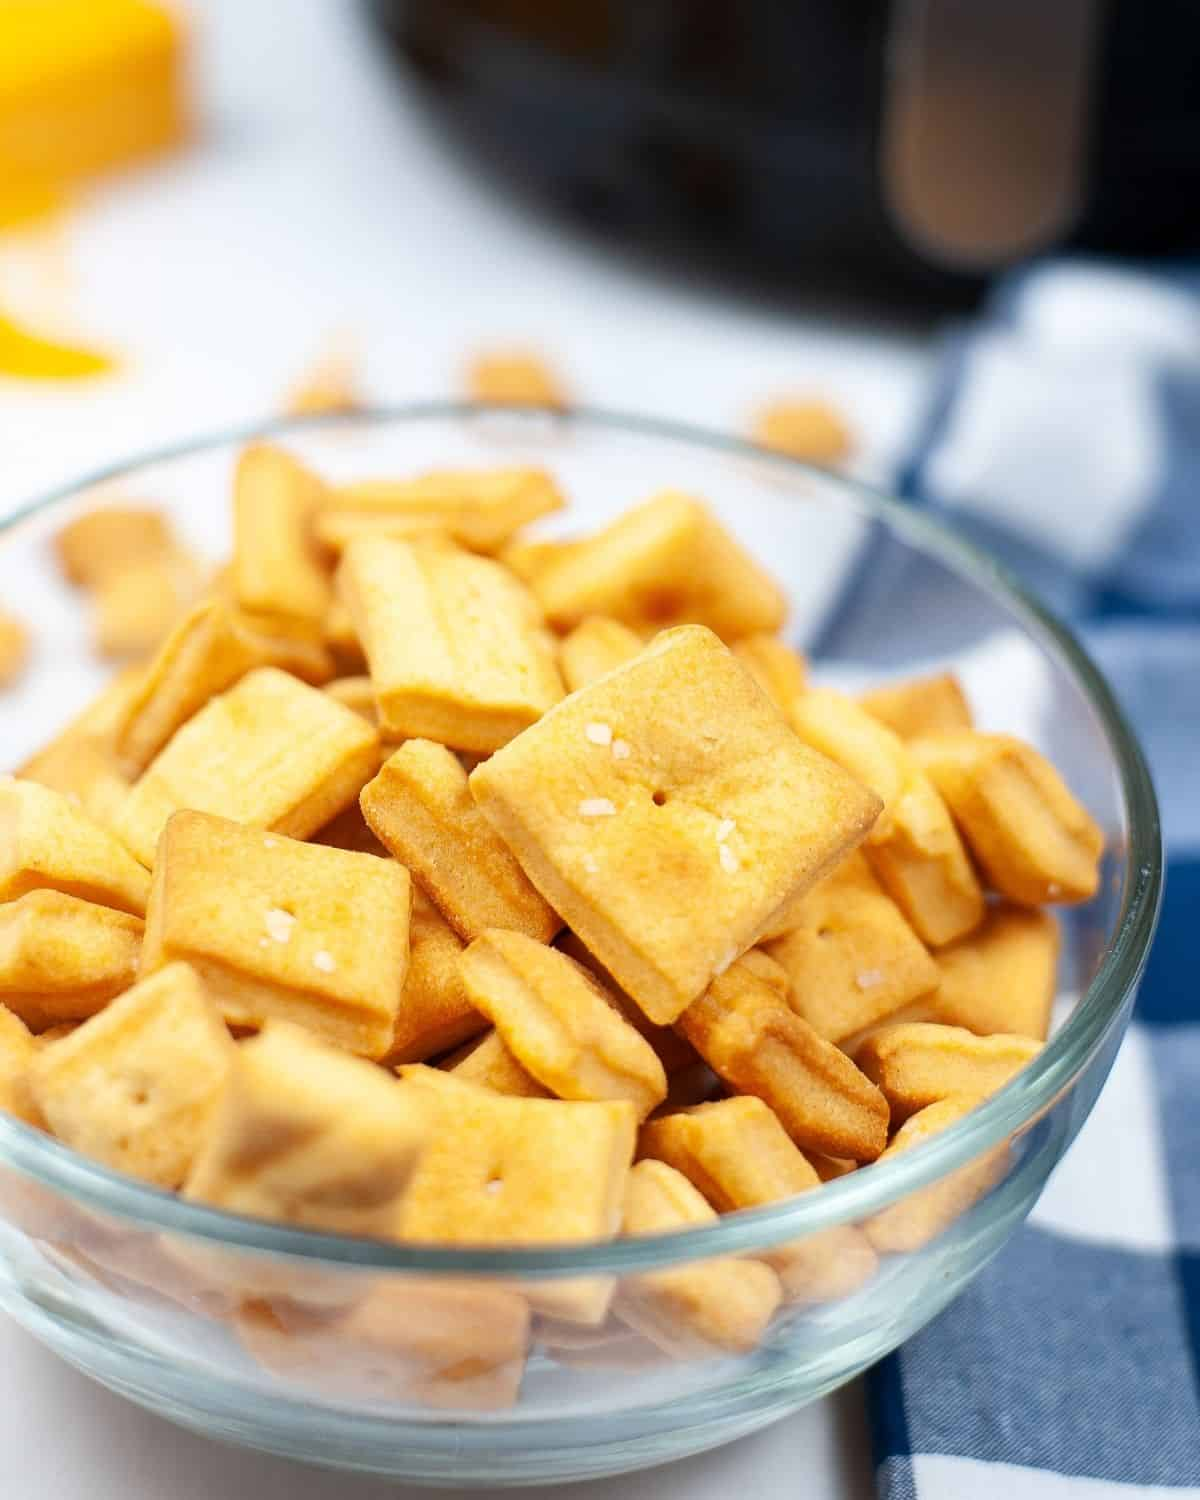 A side view of a glass bowl filled with homemade cheez-its.